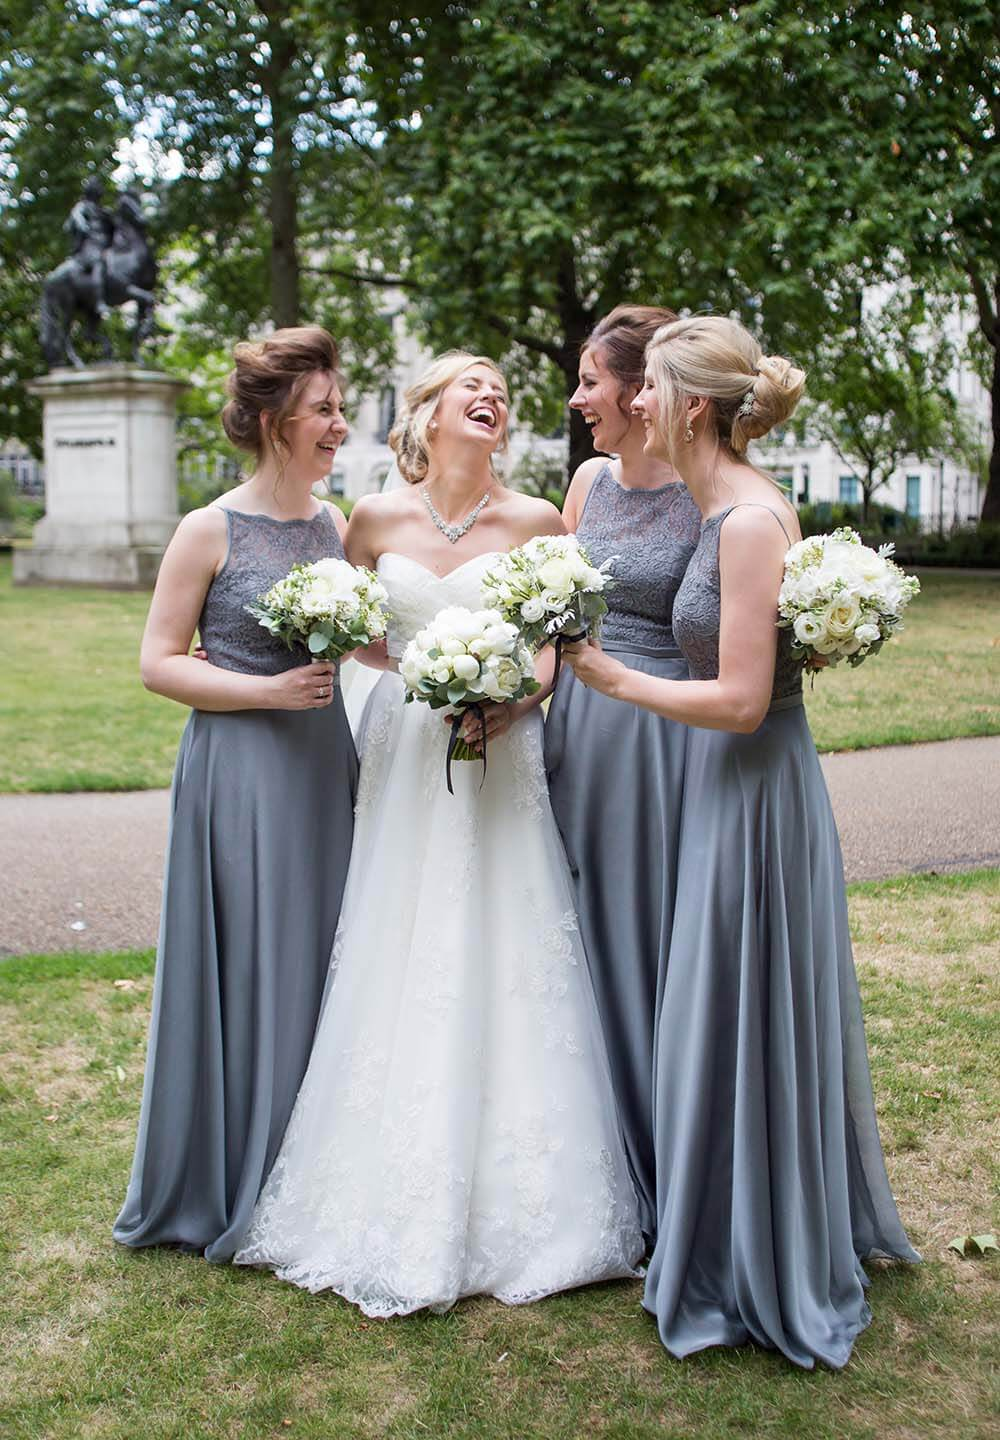 Stylish Wedding Photography | London Wedding Photographer | Philippa Sian Photography